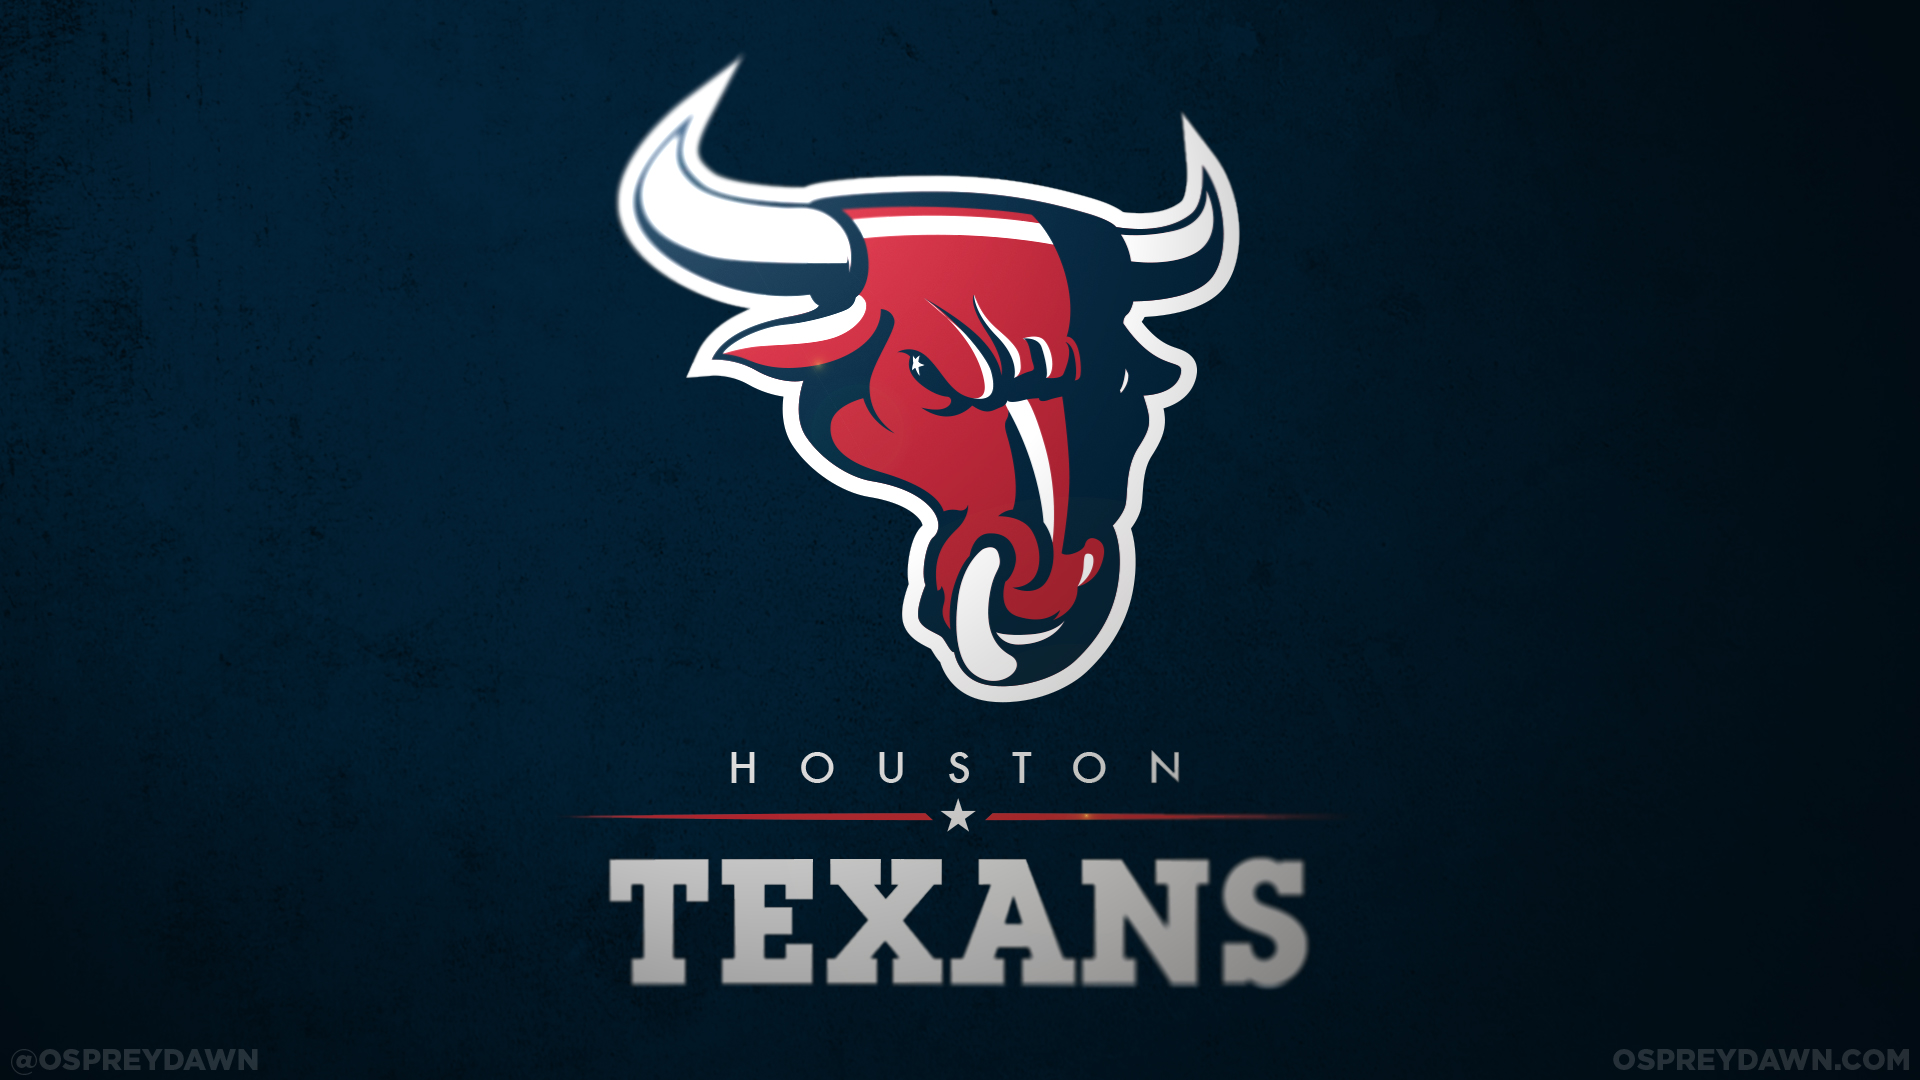 HOUSTON TEXANS nfl football f wallpaper background 1920x1080